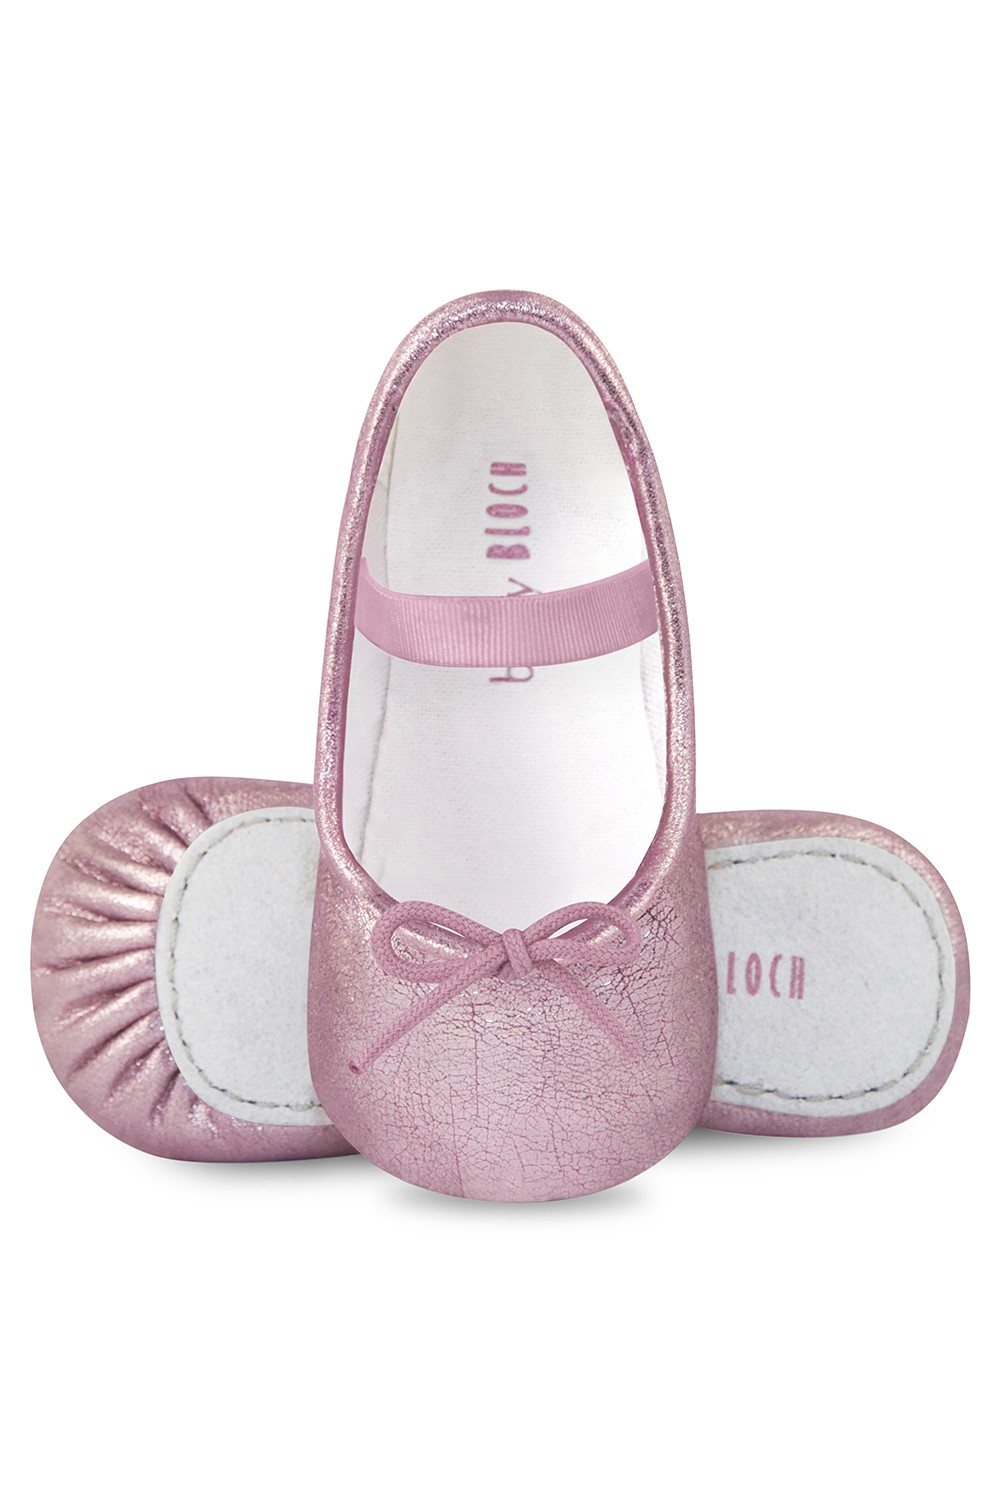 Angelica Babies Fashion Shoes